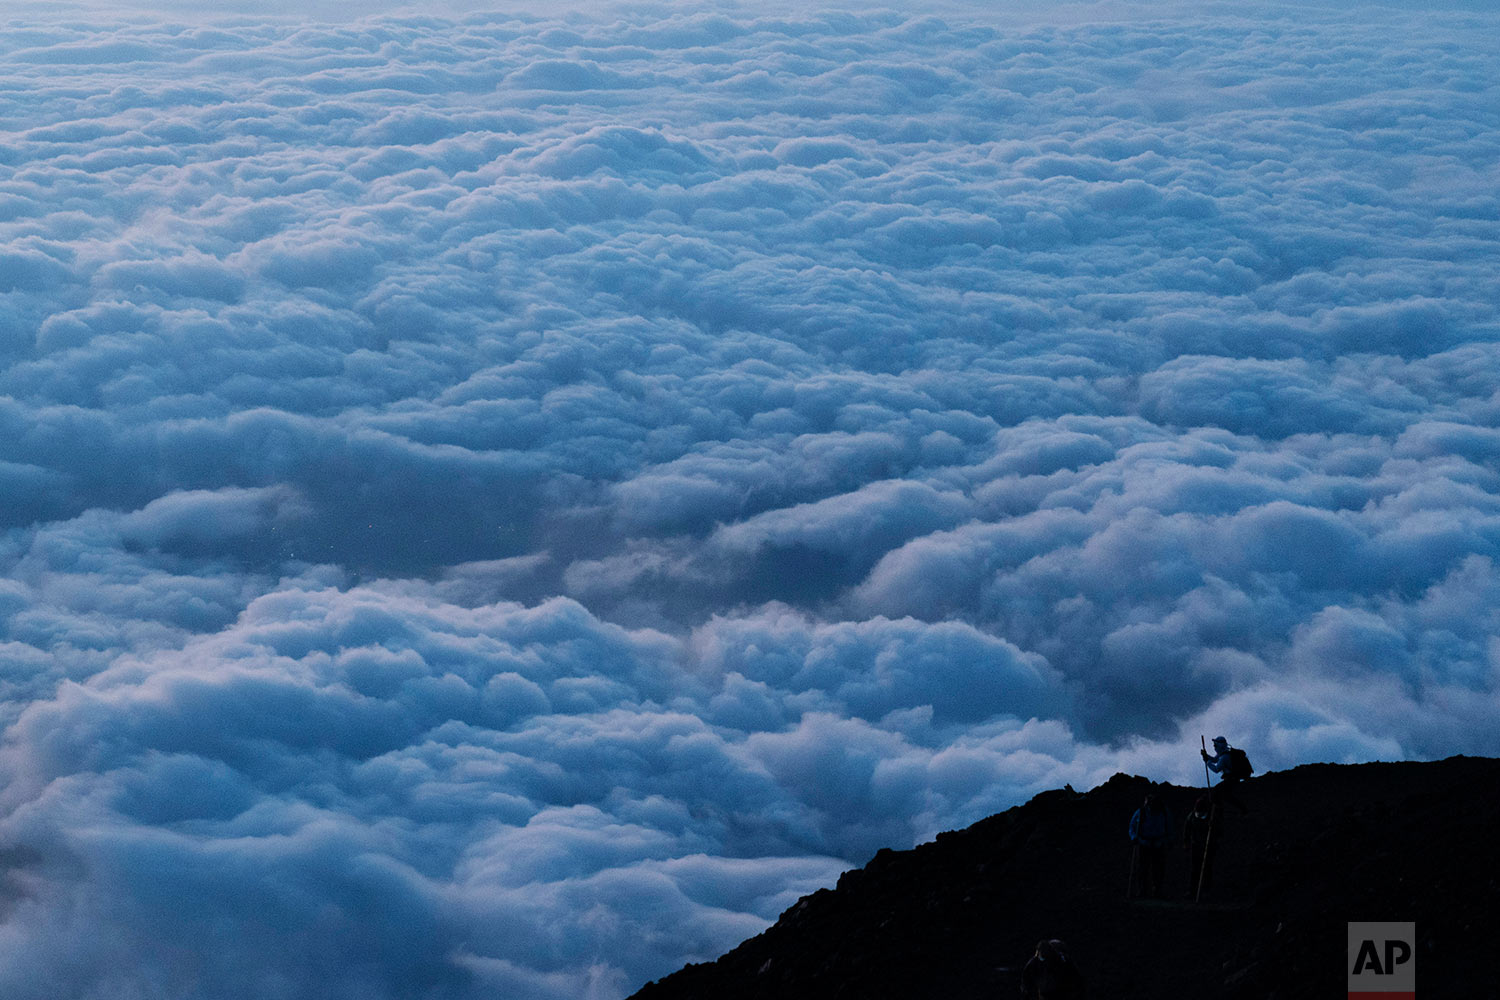 A climber stops to take pictures of clouds while climbing towards the summit of Mount Fuji to watch the sunrise, Aug. 27, 2019, in Japan. (AP Photo/Jae C. Hong)